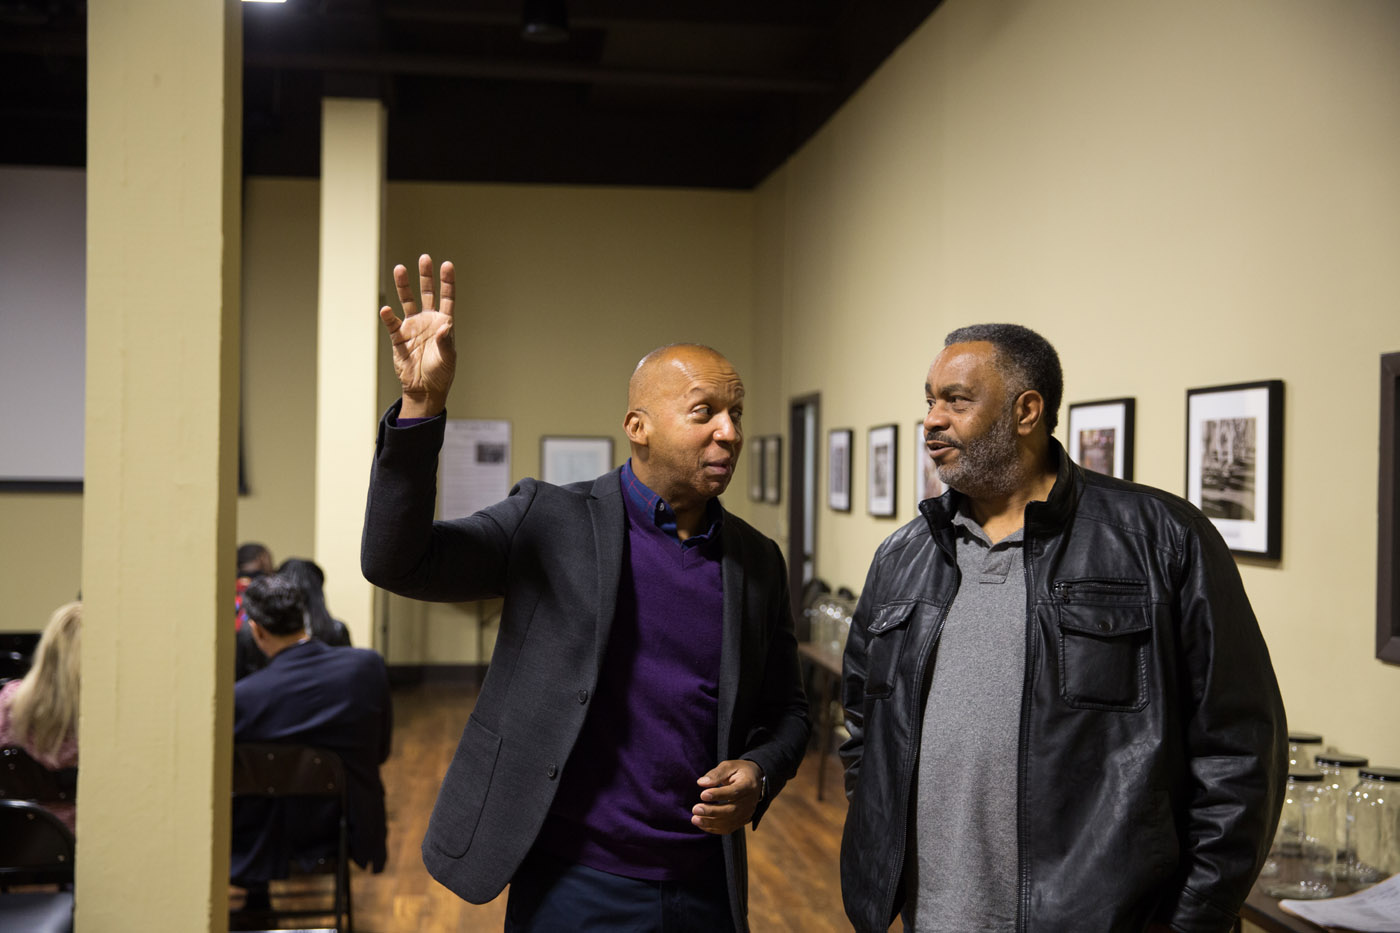 Montgomery, Ala - 02-12-16 - Left to right: Mr. Stevenson talking to Anthony Ray Hinton, Community Educator, was falsely accused of committing two murders outside of Birmingham, Alabama, in 1985. He was wrongly convicted and spent nearly 30 years on Alabama's death row before he was exonerated and freed in April 2015, with the help of EJI. - Credit Photo by Ozier Muhammad